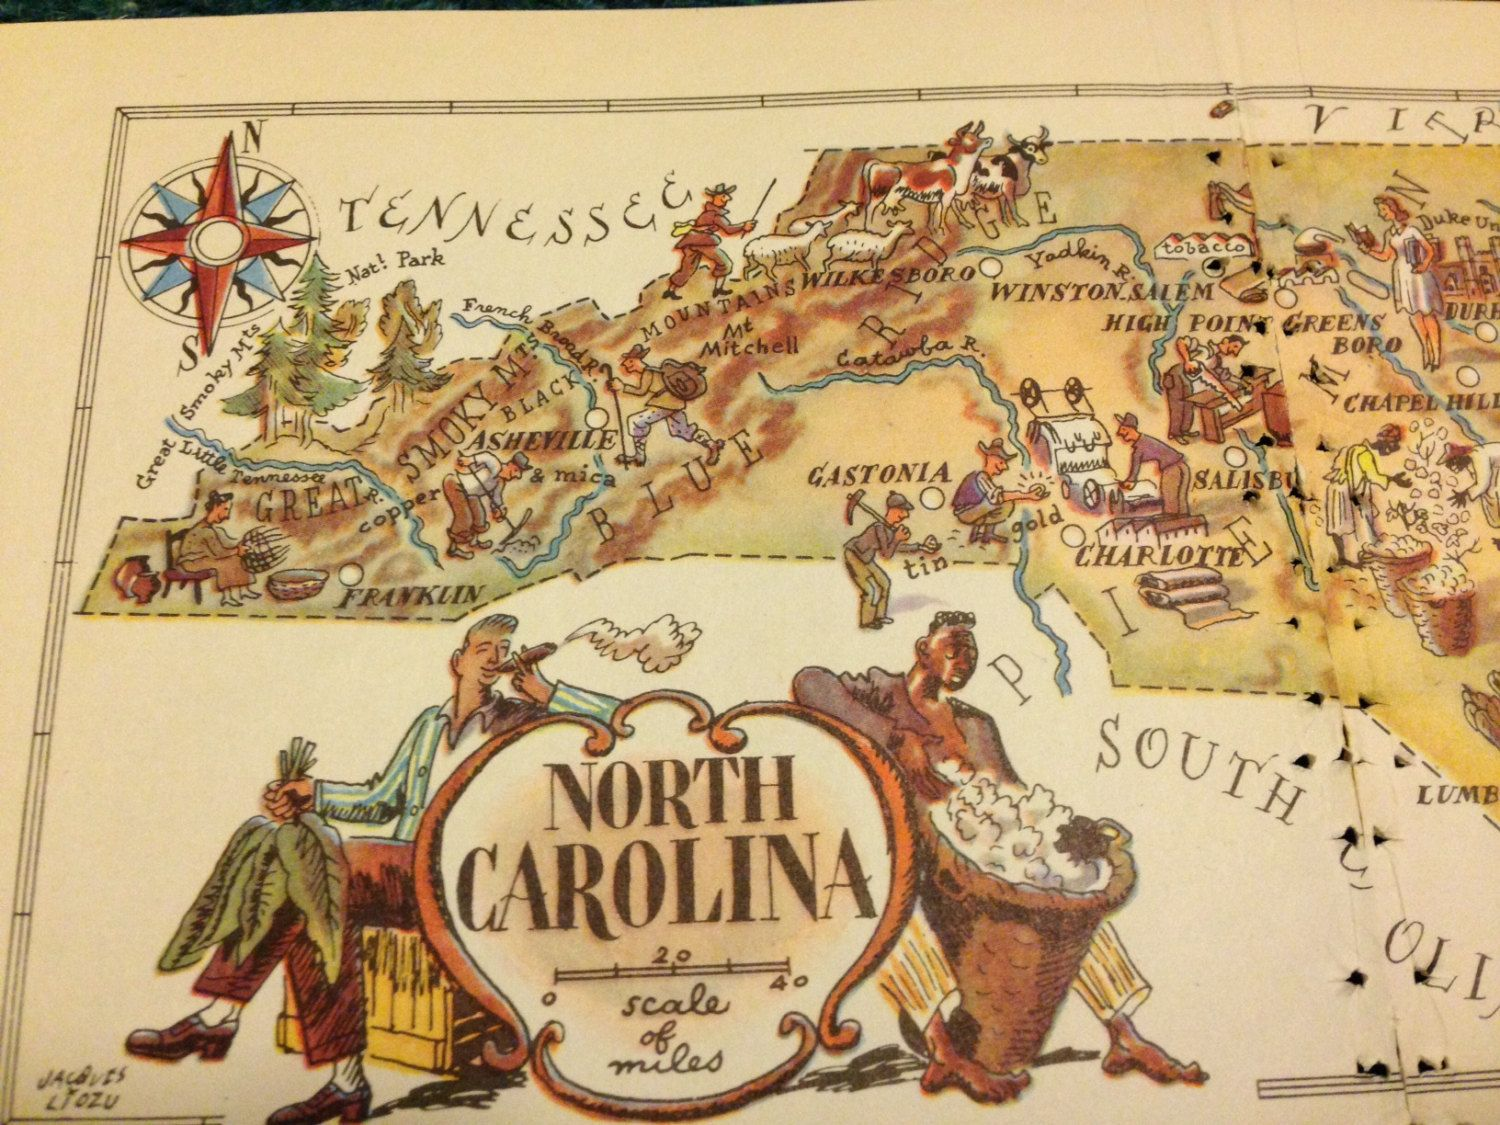 North Carolina Map Illustration / Vintage Map Art / 1950s Retro ...